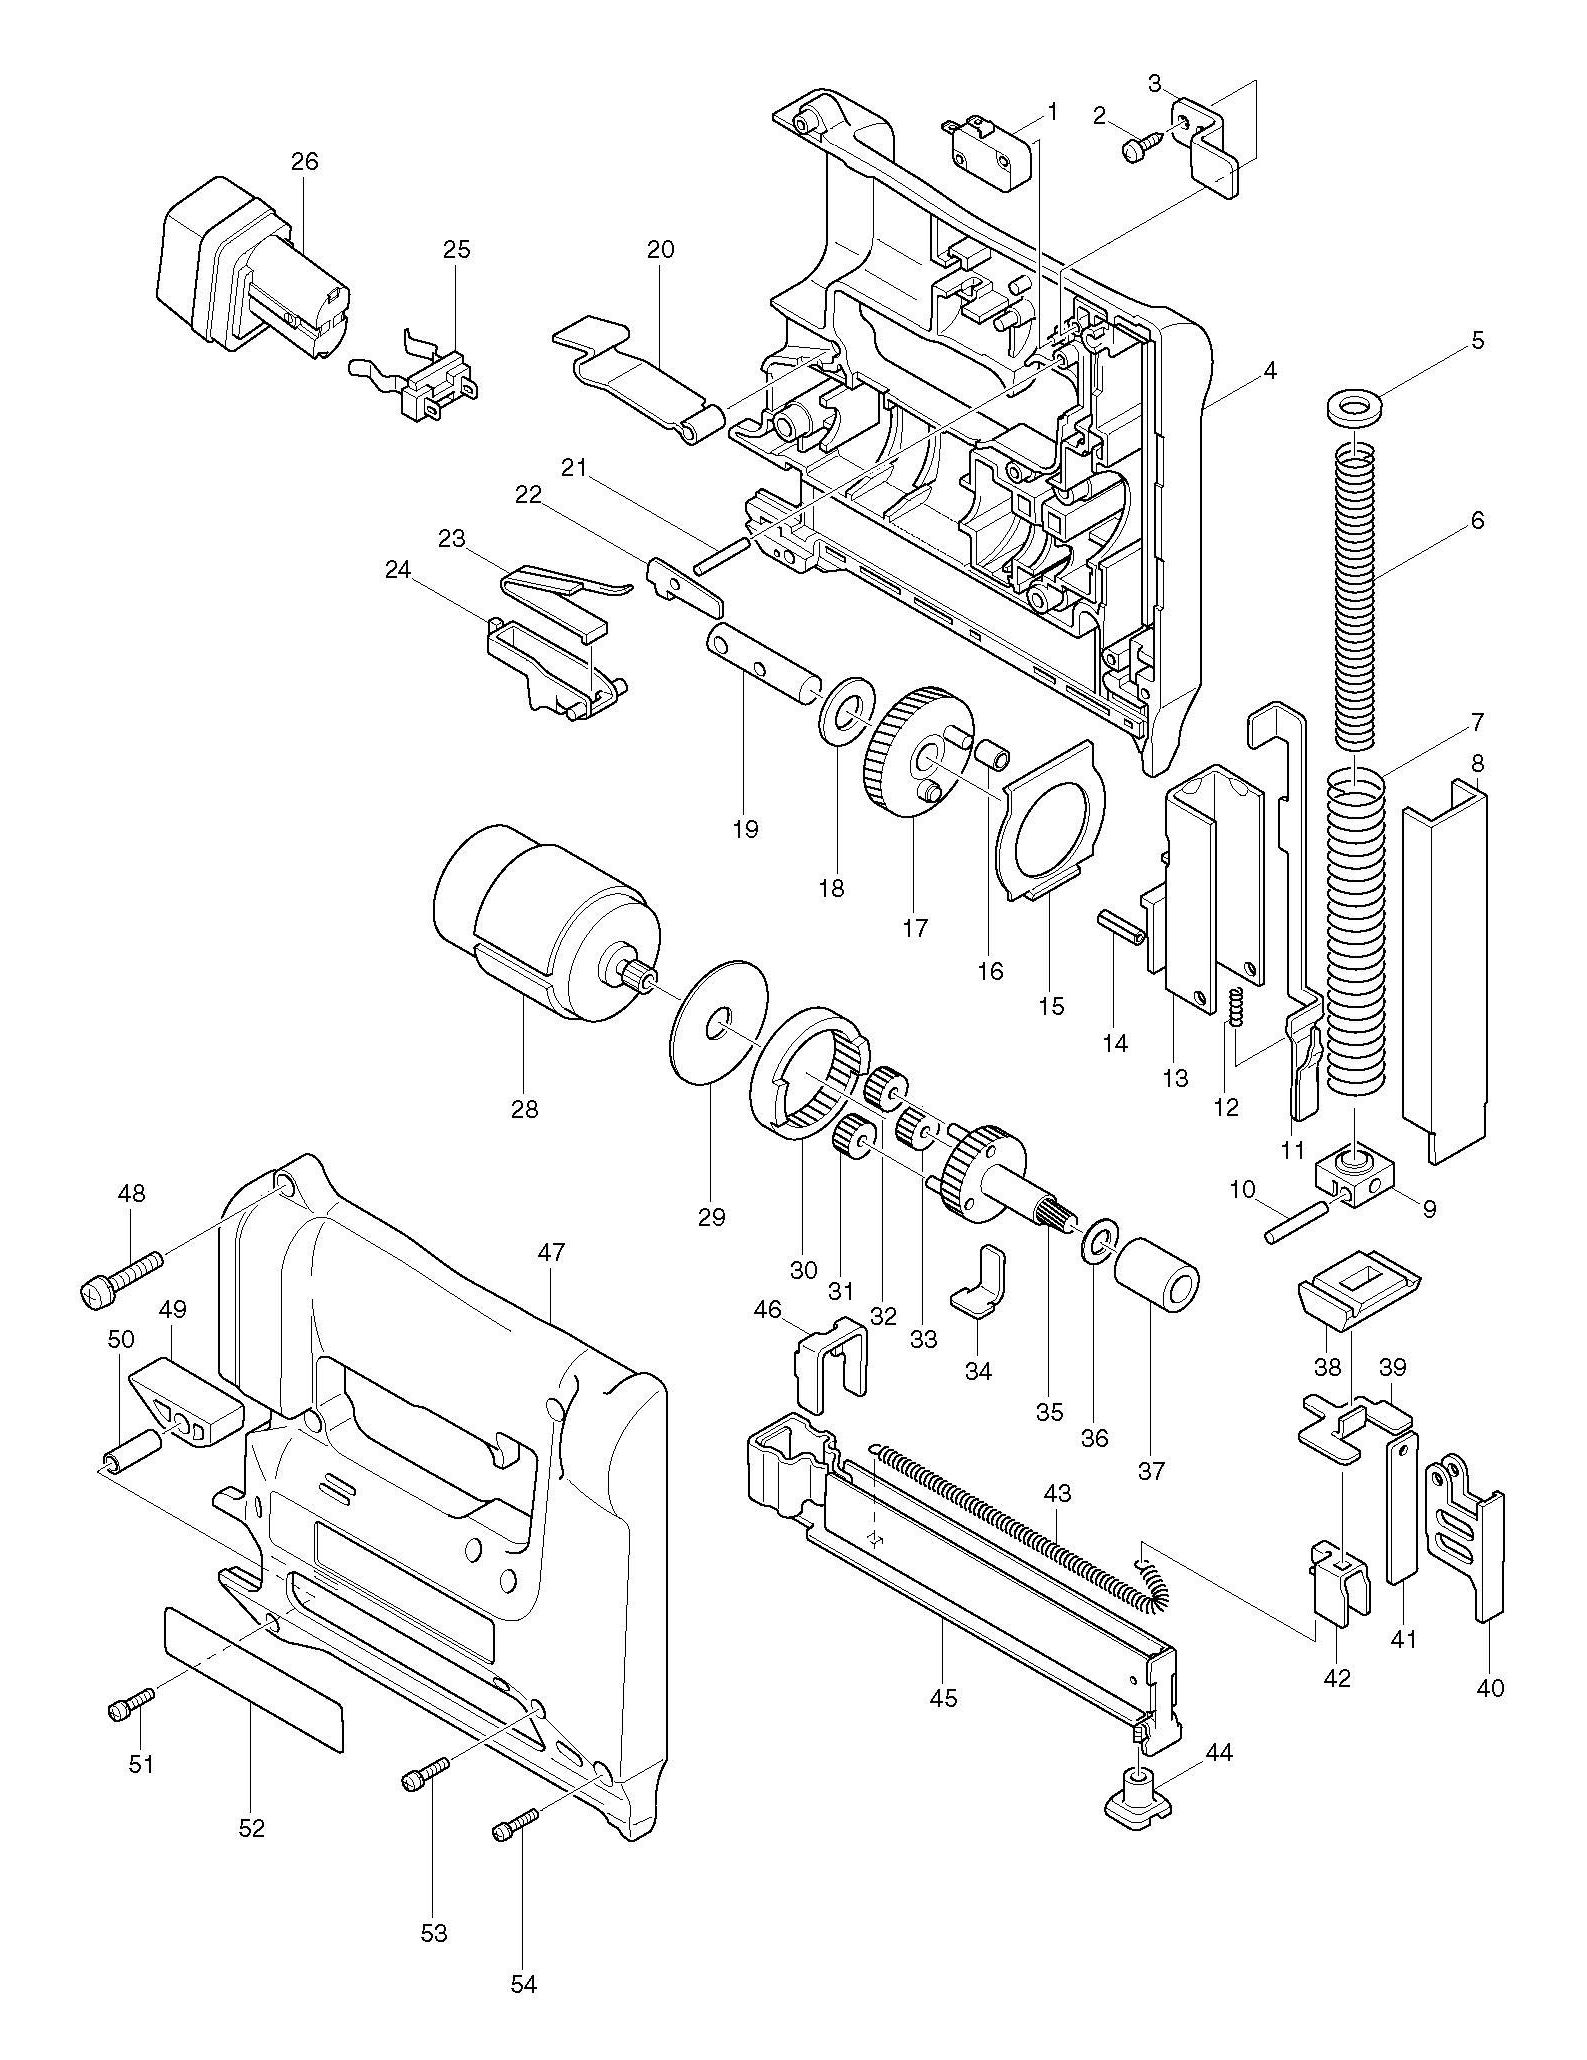 Spares for Makita T221d Stapler SPARE_T221D from Power